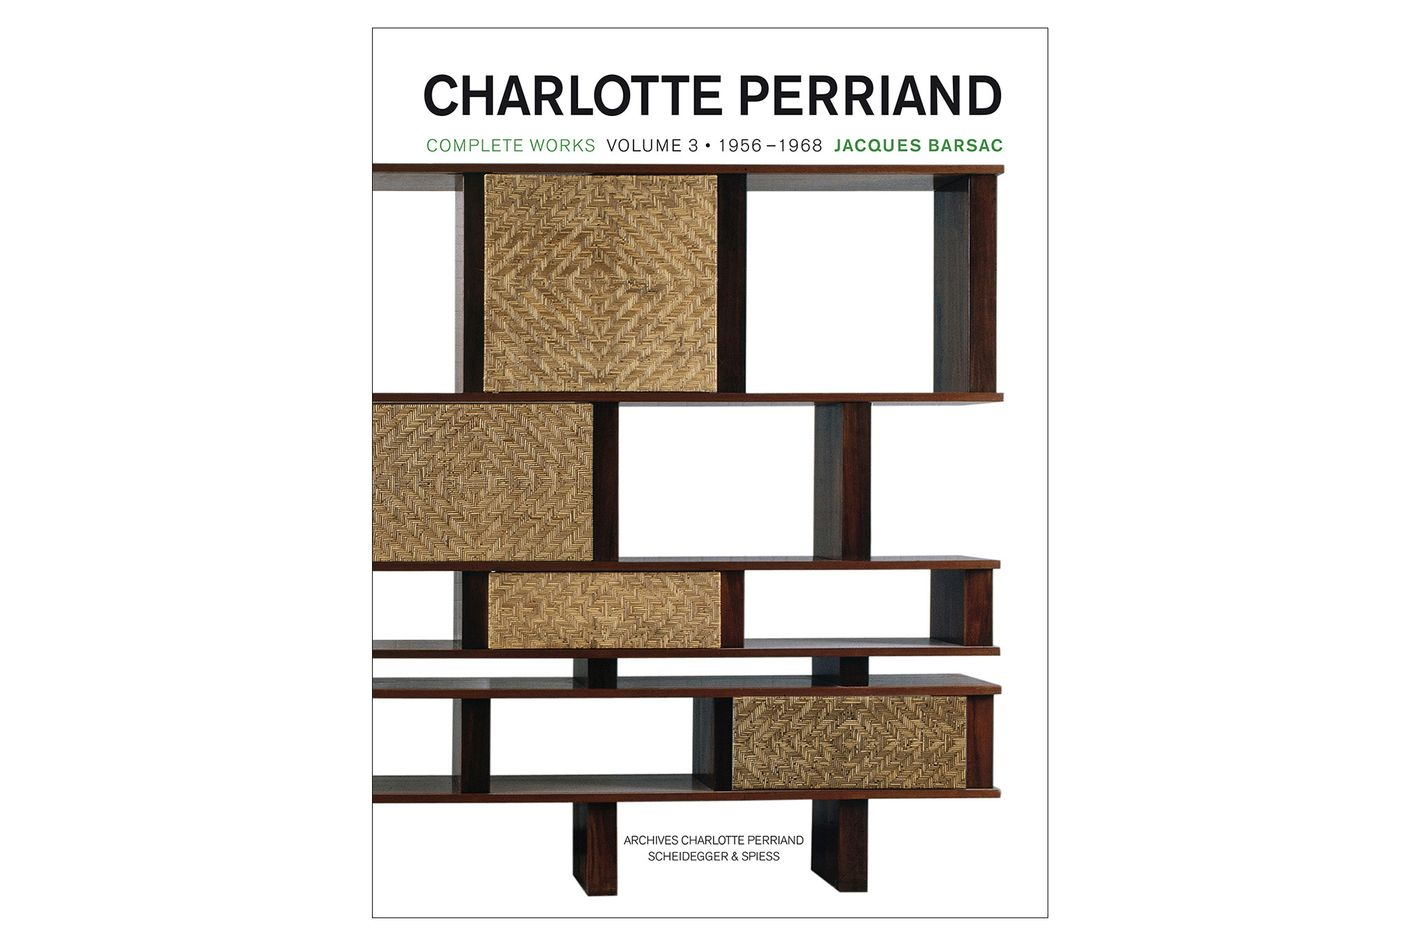 Charlotte Perriand: Complete Works Volume 3: 1956 - 1968